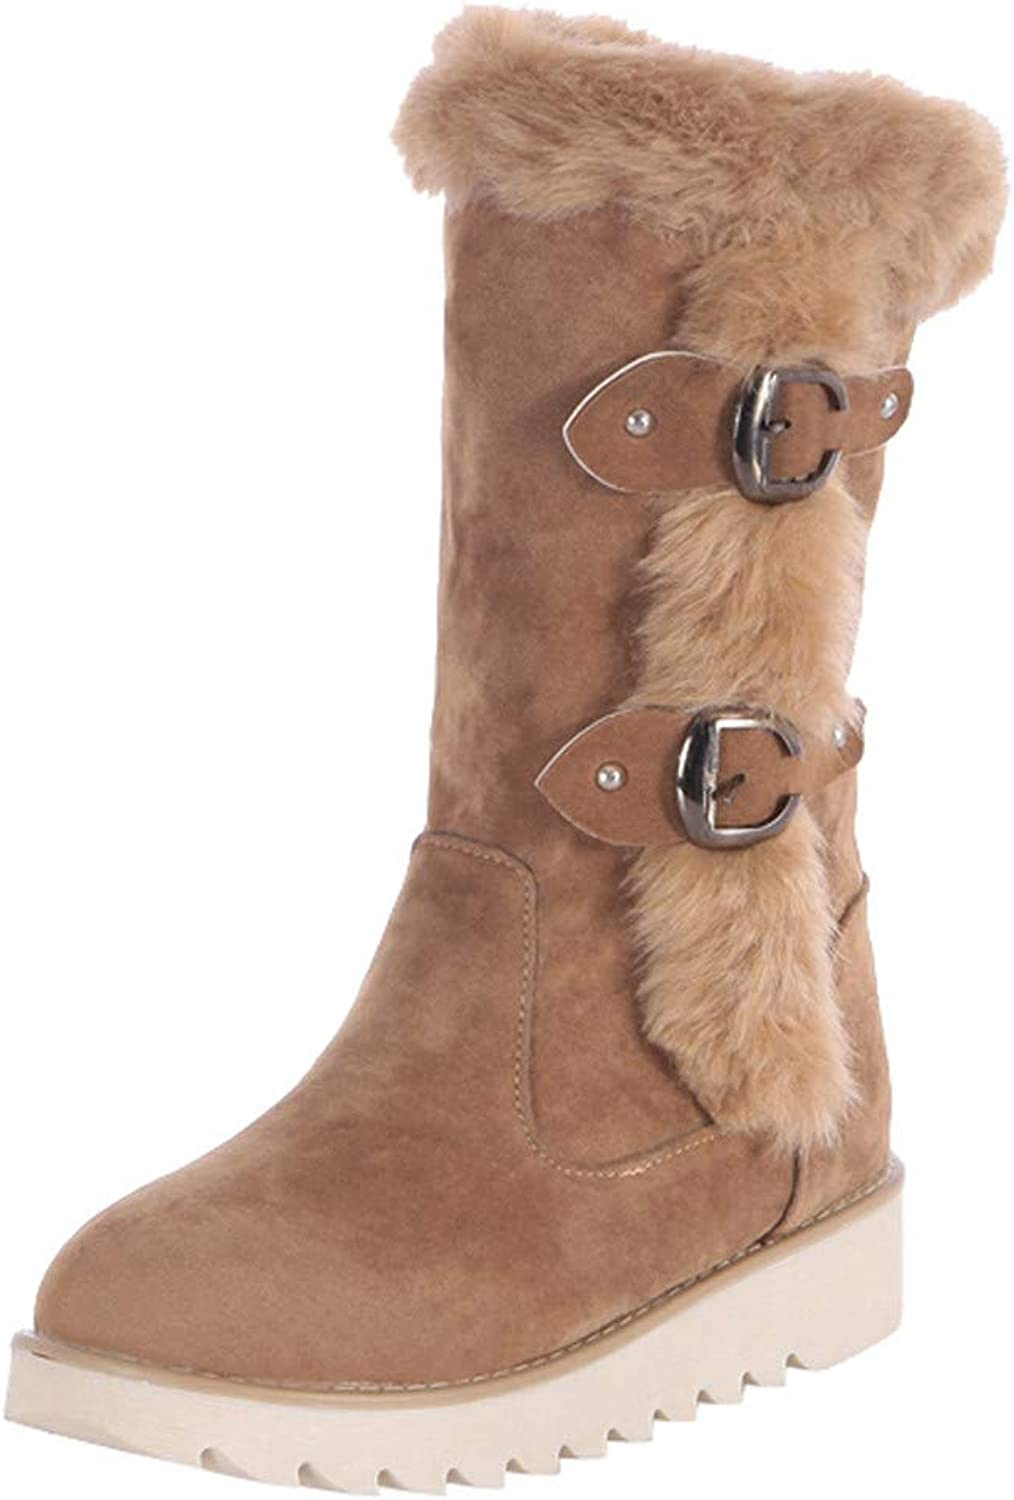 JESPER Women Winter Suede Ankle Boots Buckle Strap Furry Edge Warm Middle Tube Snow Boots